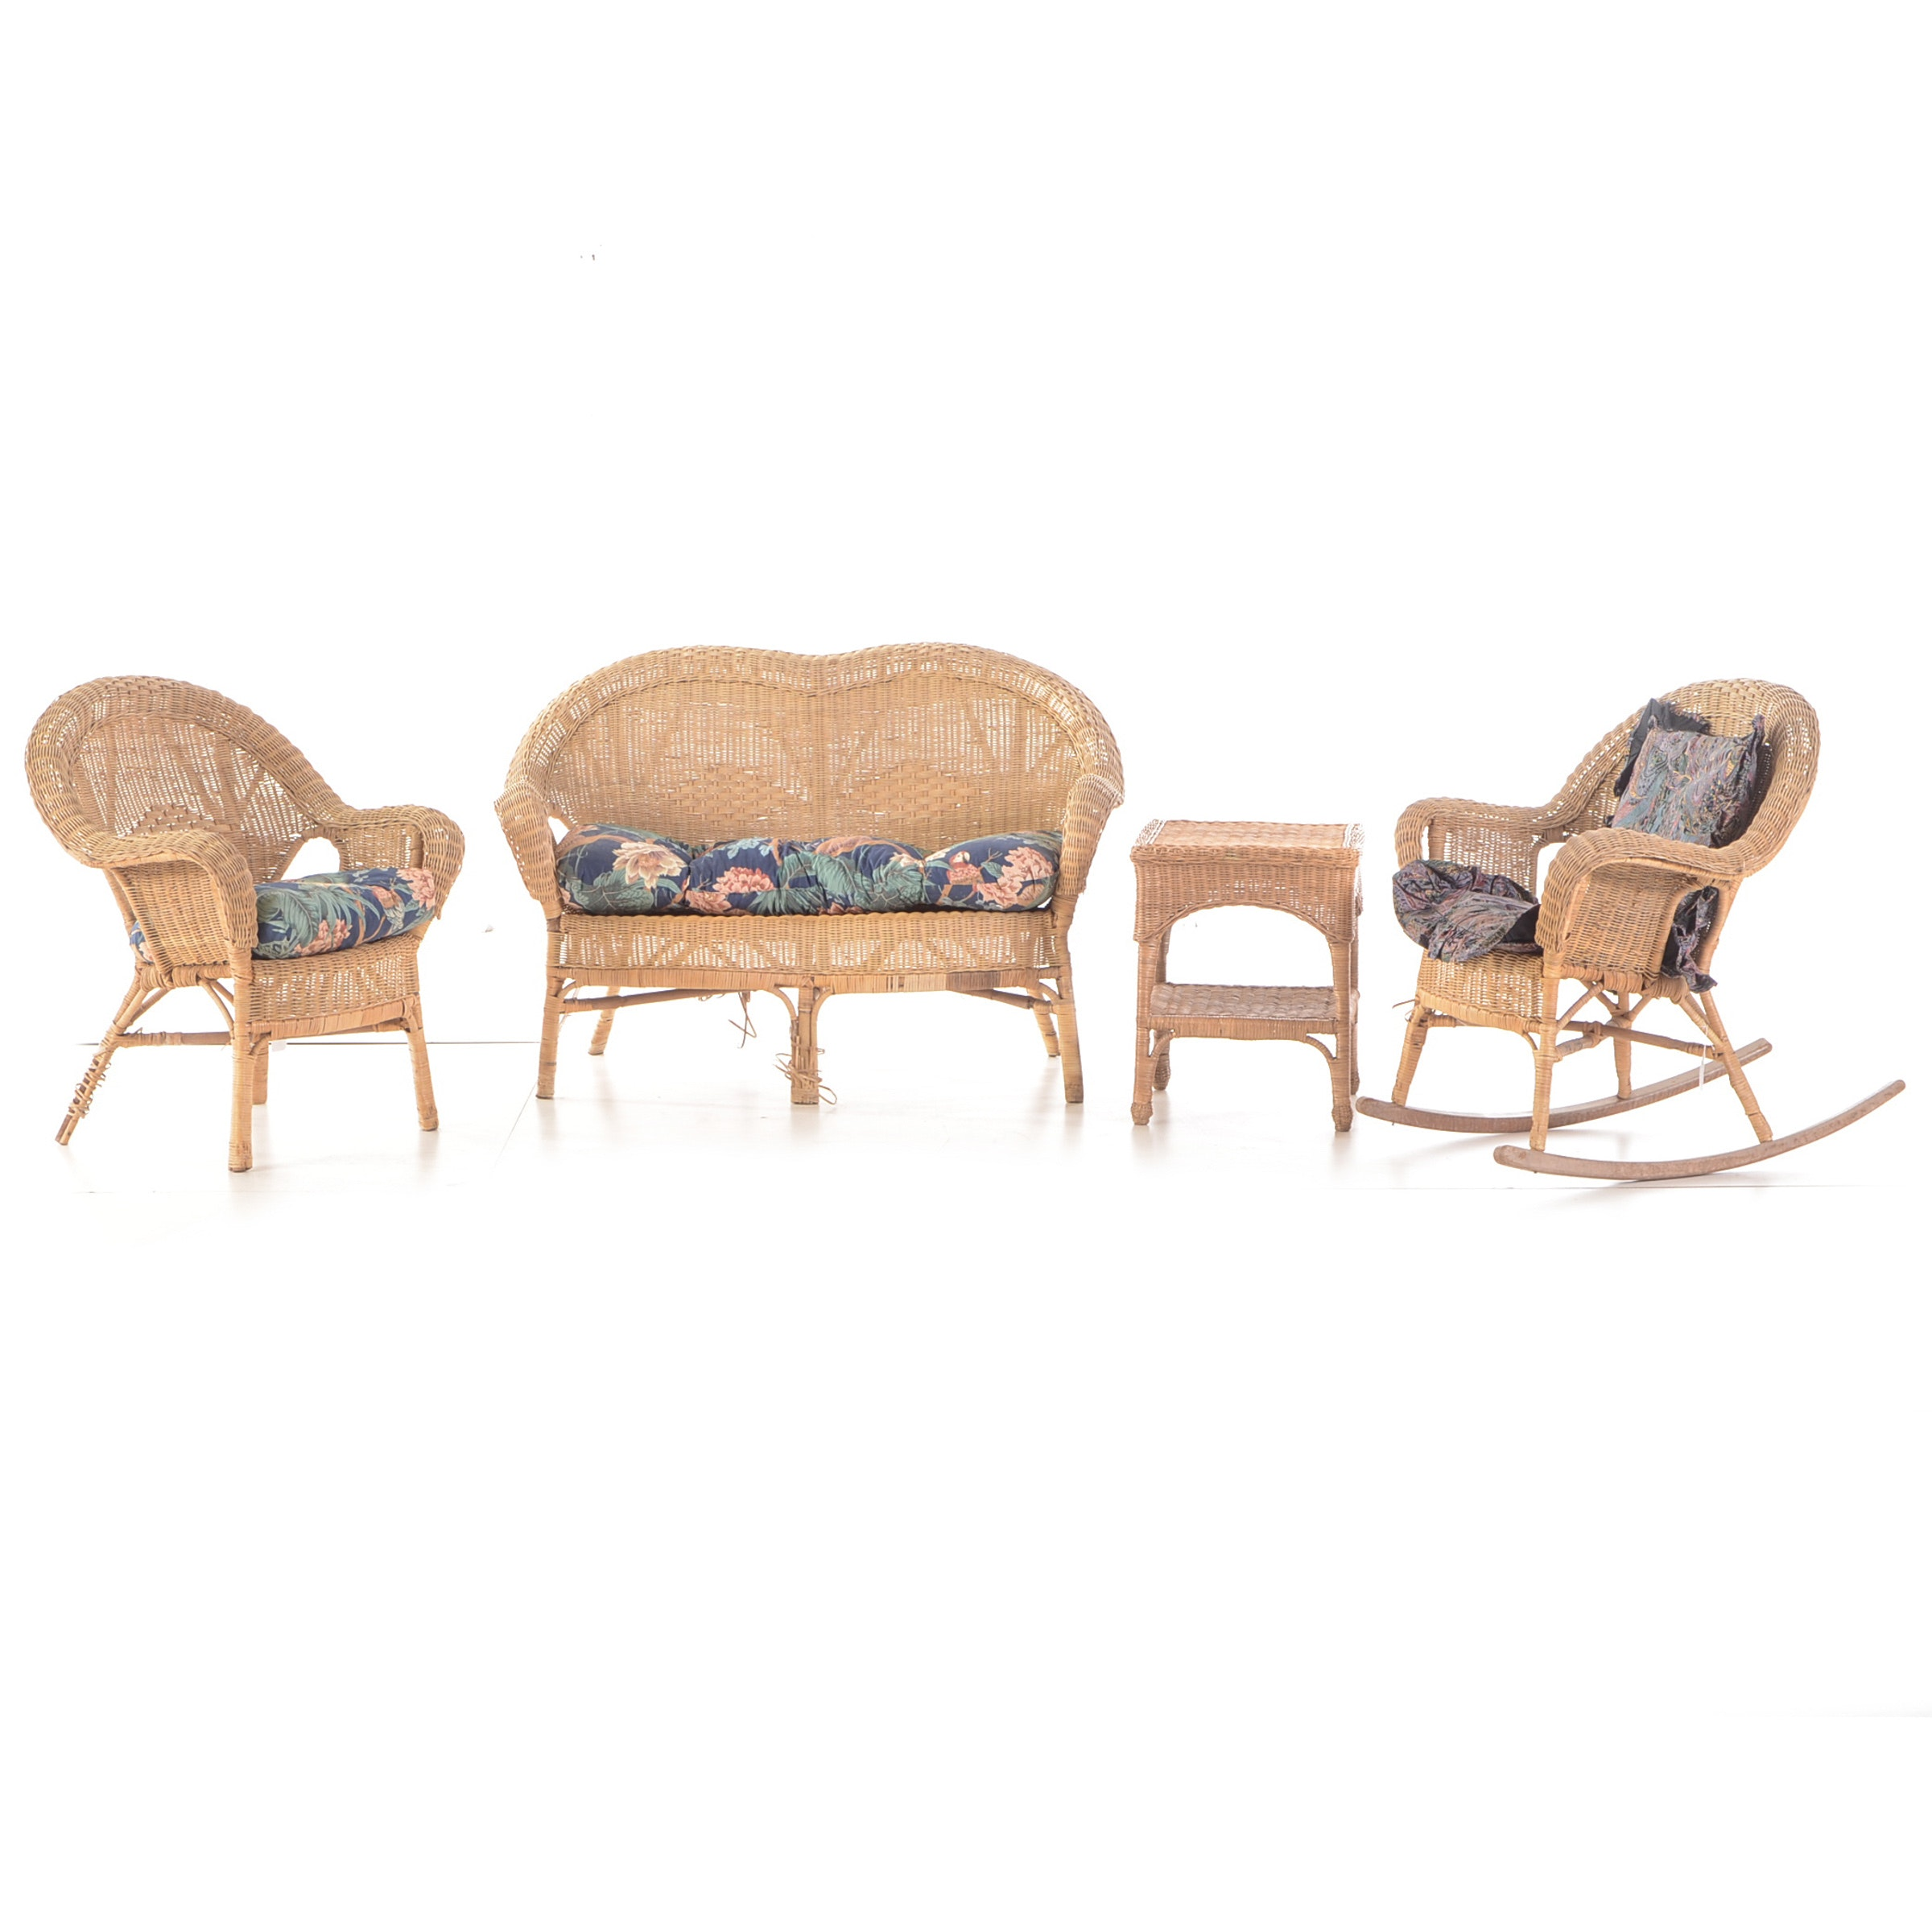 Four Piece Wicker Set